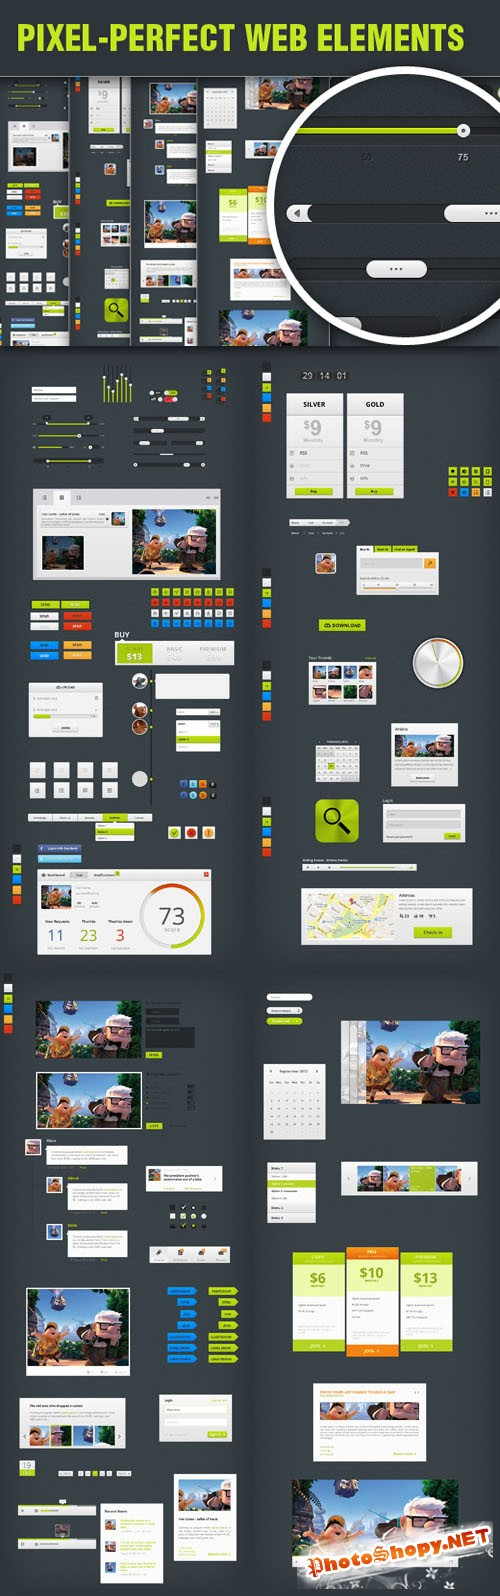 Get a Complete Set of Pixel Perfect Web Elements for only $20